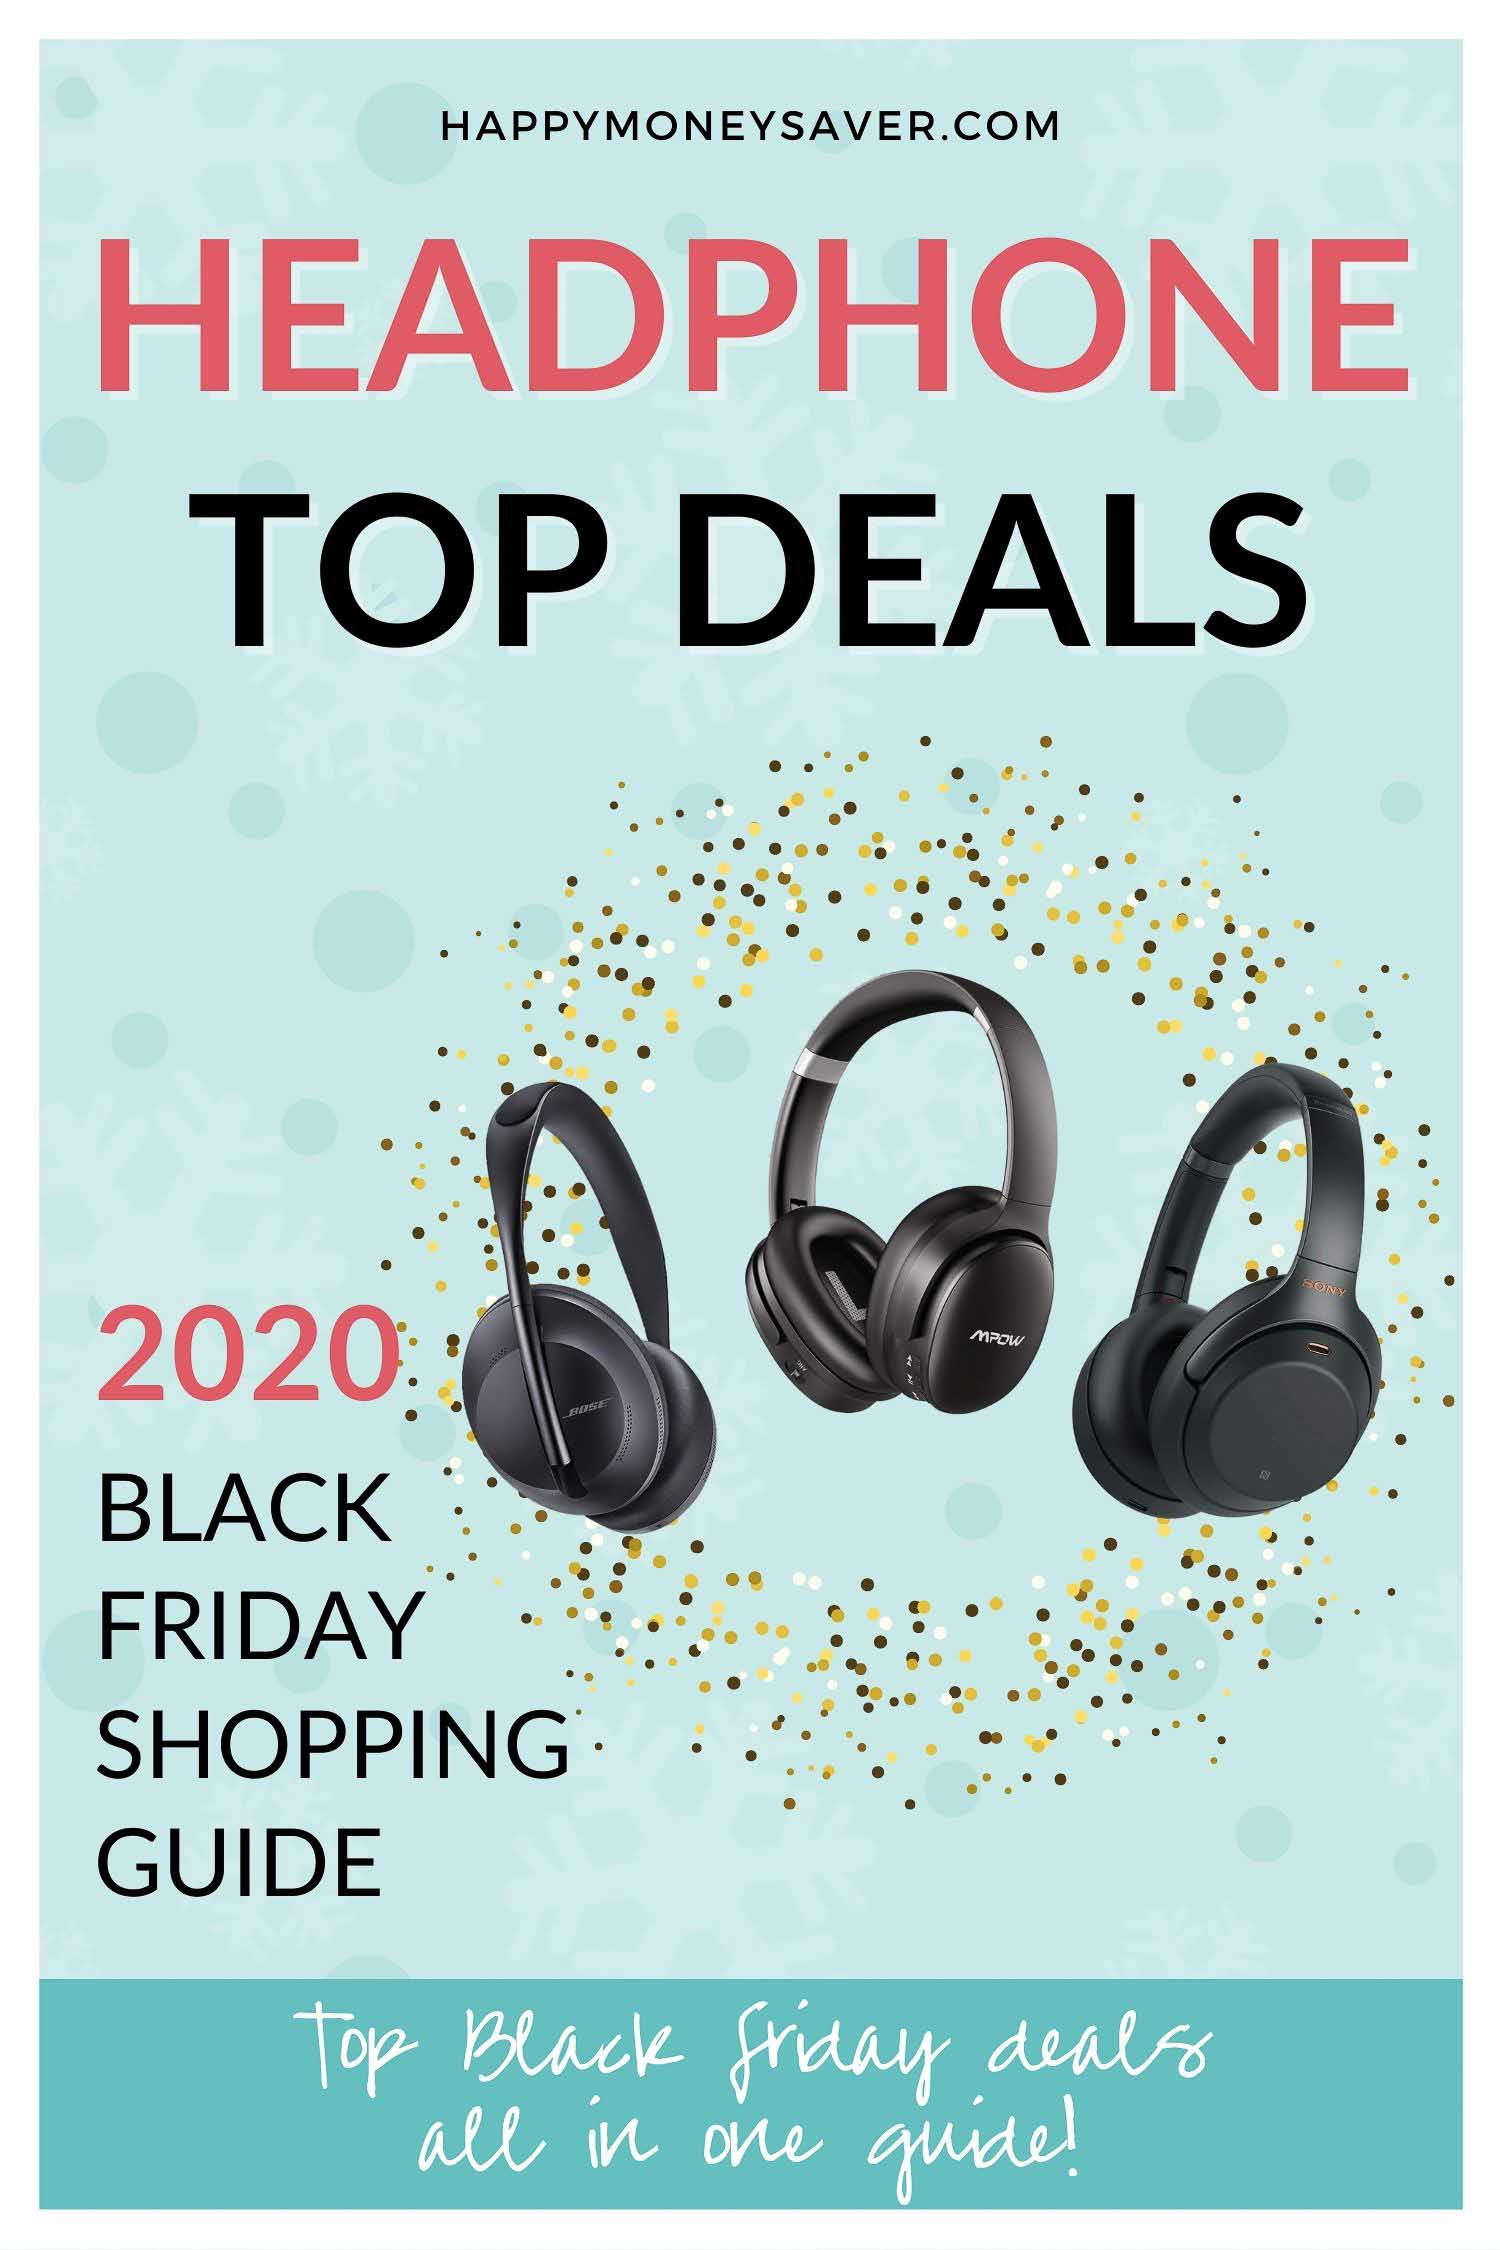 HUGE roundup of all the headphone deals for Black Friday 2020! Bluetooth headphones, beats dr dre headphones and more.